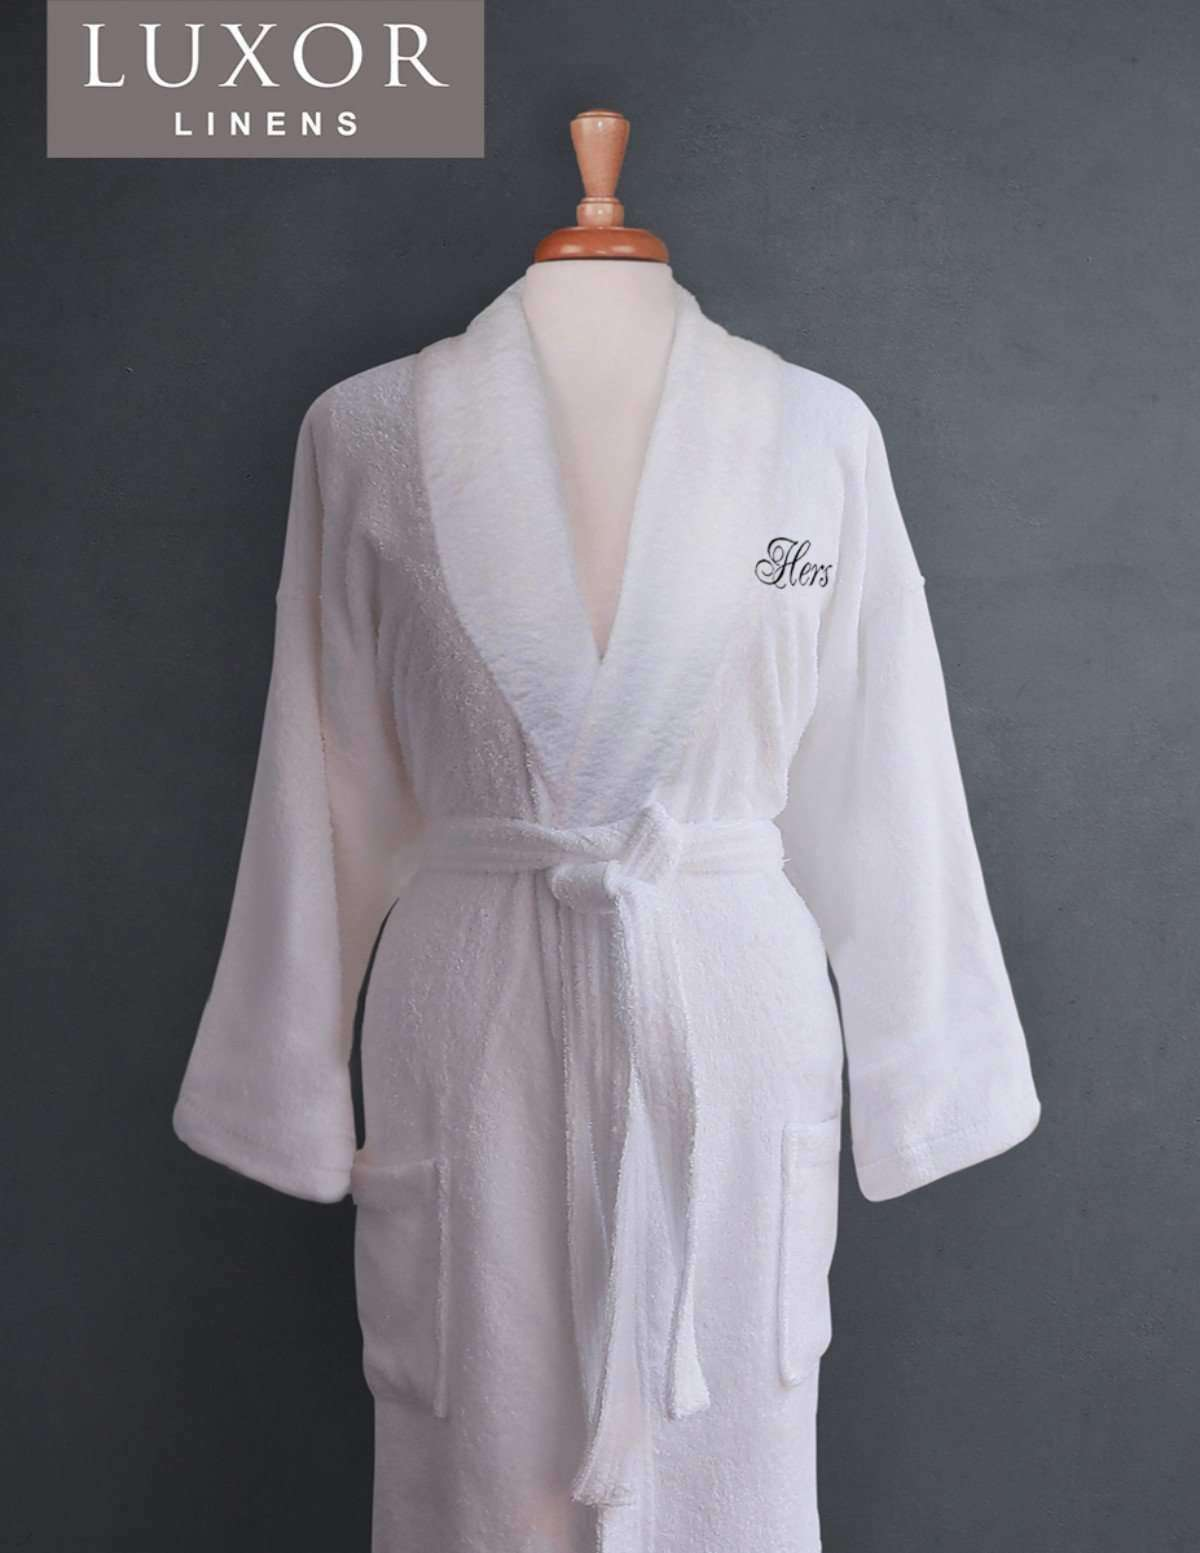 Lakeview Signature Egyptian Cotton Terry Spa Robes - Luxor Linens 27a896cdc